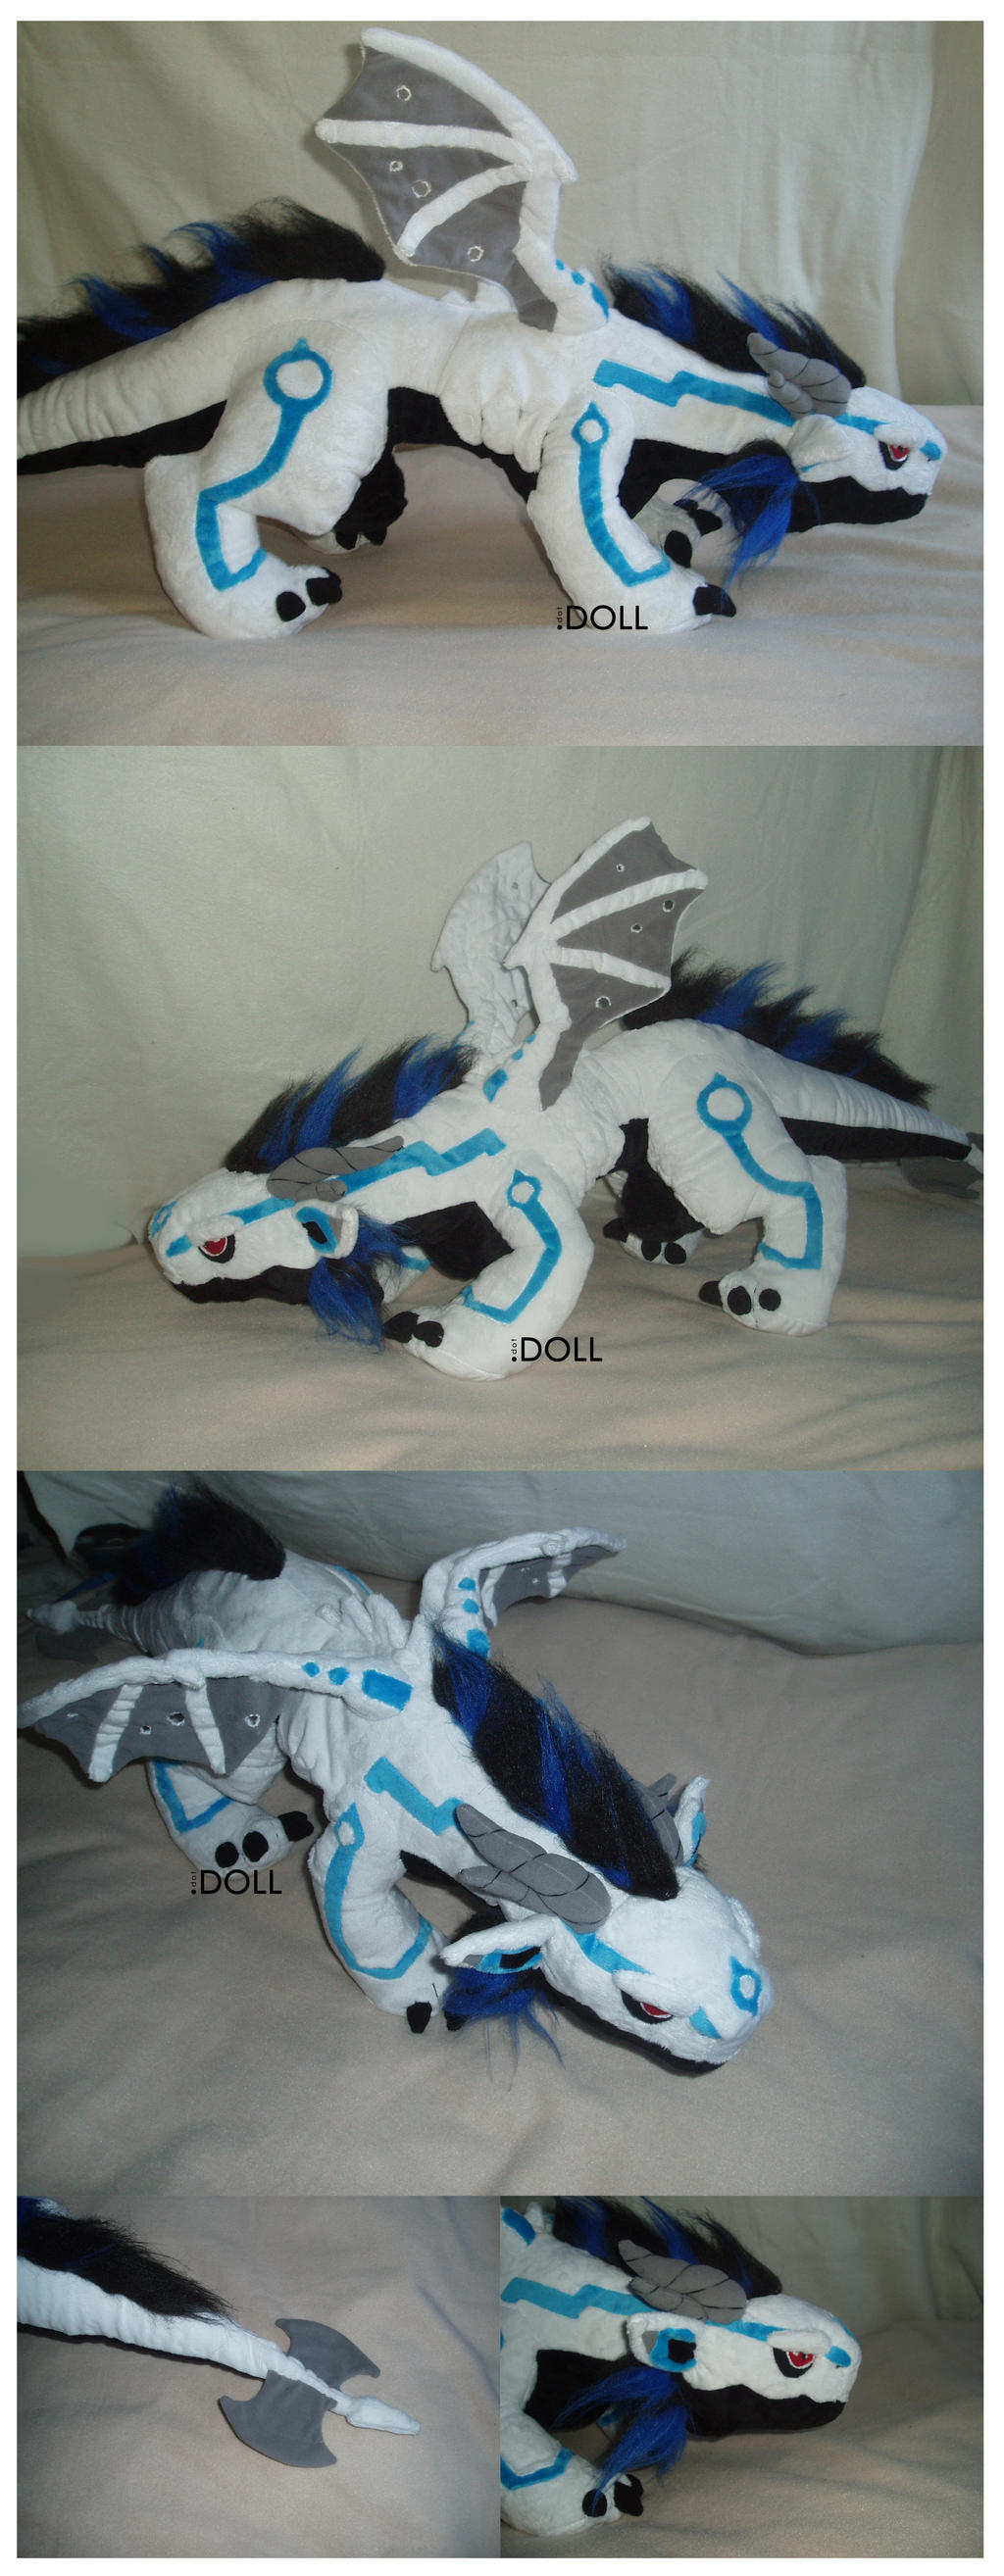 Meka - Giant Dragon Plush by dot-DOLL